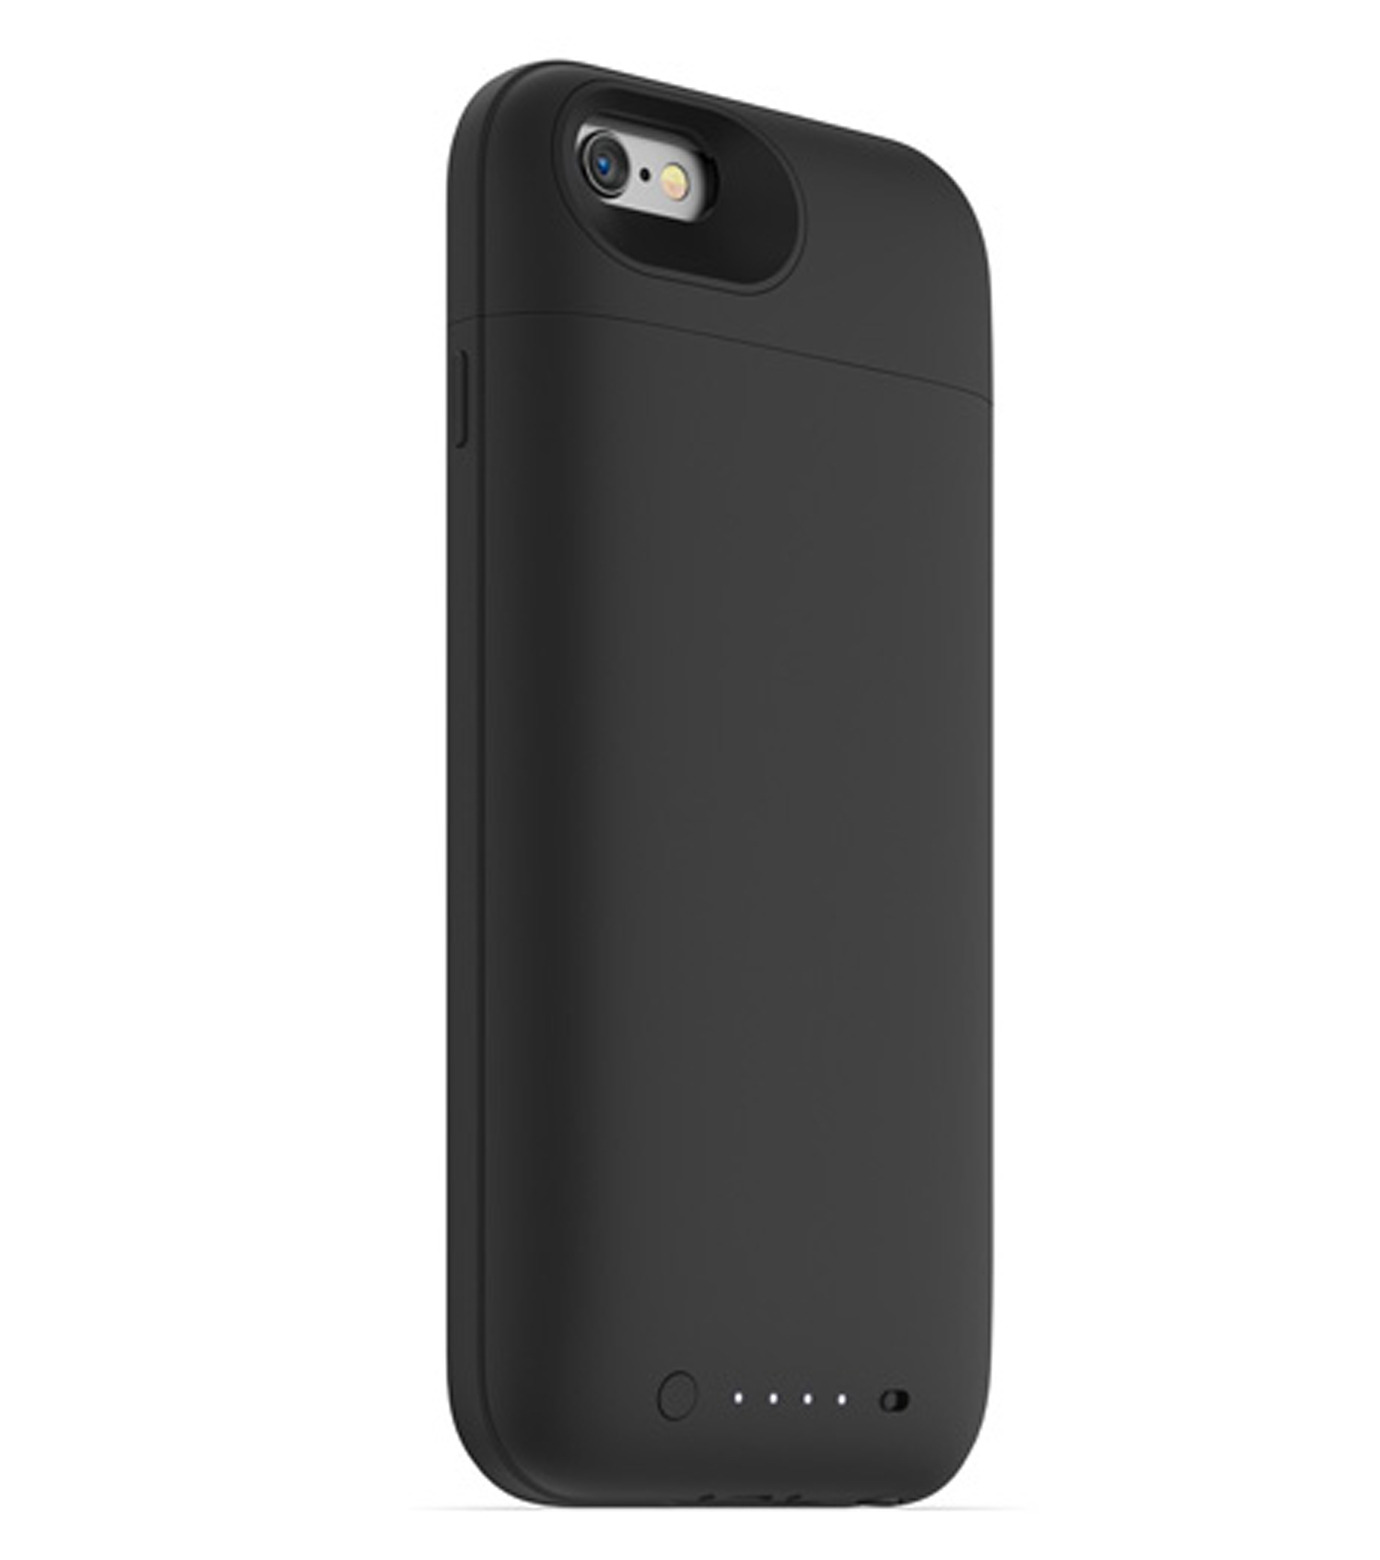 Mophie(モーフィー)のmophie juice pack ultra for iPhone 6-BLACK(ケースiphone6/6s/case iphone6/6s)-MOP-PH-0080-13 拡大詳細画像3